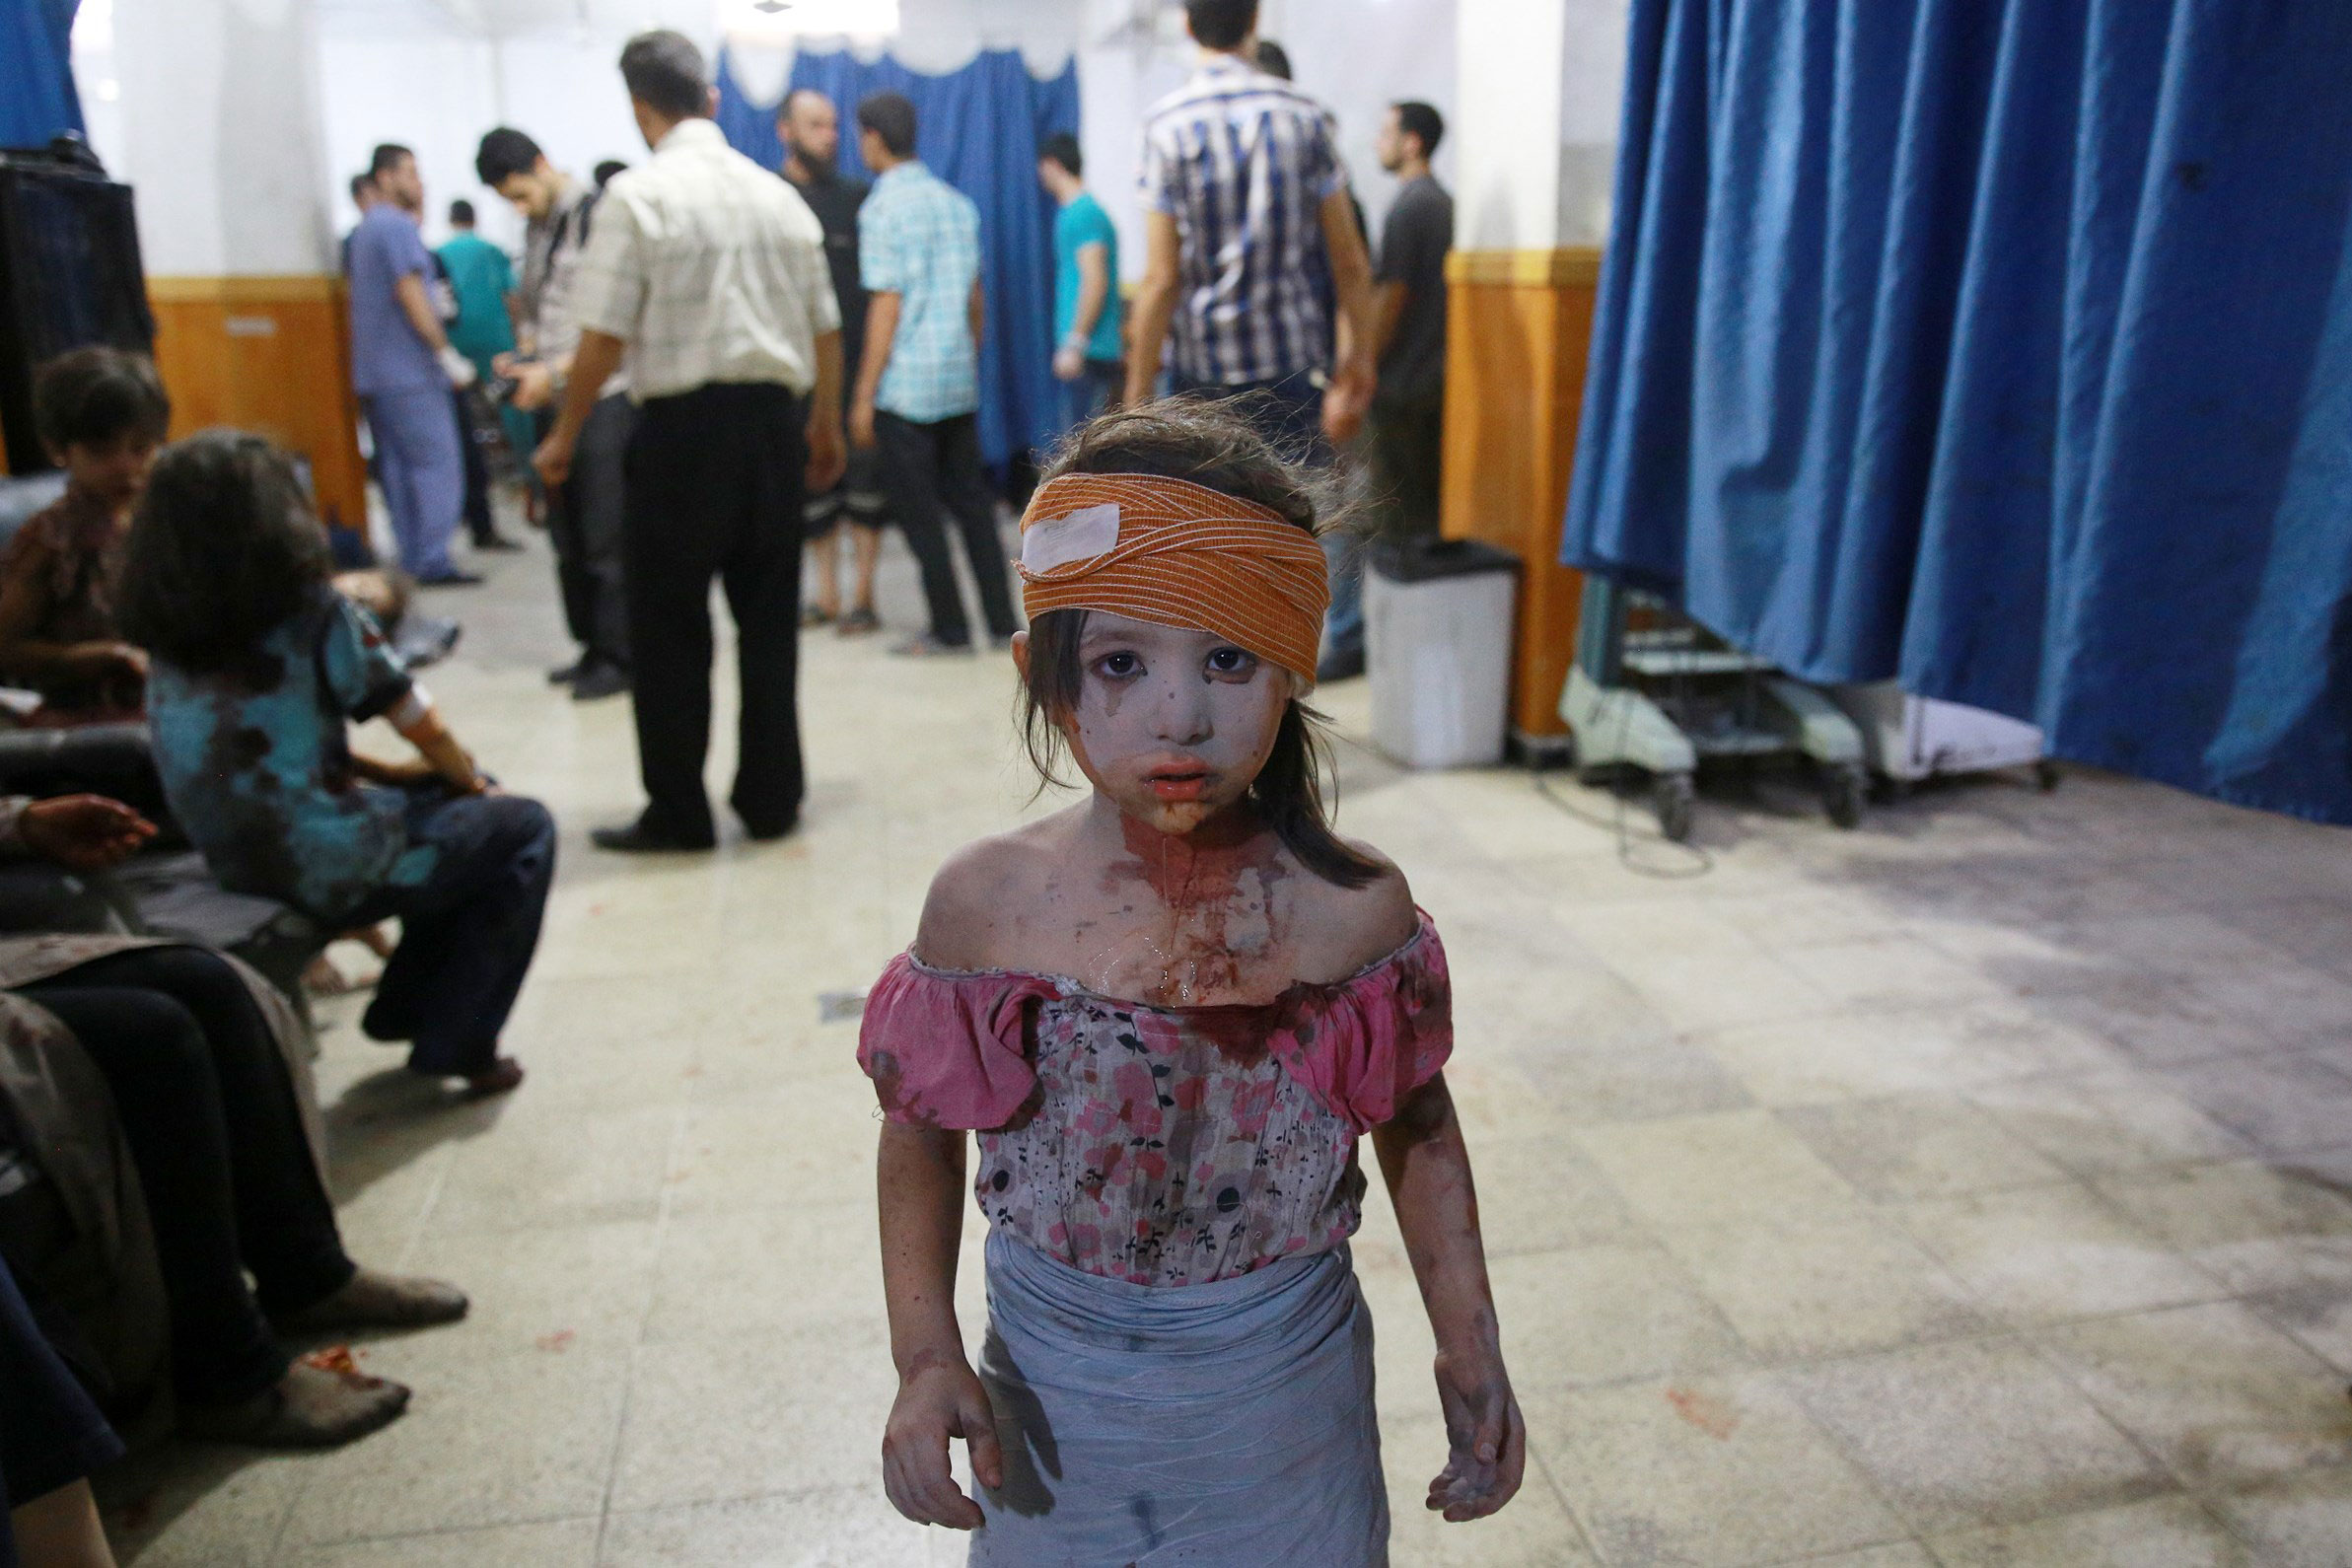 A wounded Syrian girl stands in a makeshift hospital in the rebel-held area of Douma, east of Syria's capital of Damascus, following shelling and air raids by Syrian government forces. Aug. 22, 2015.